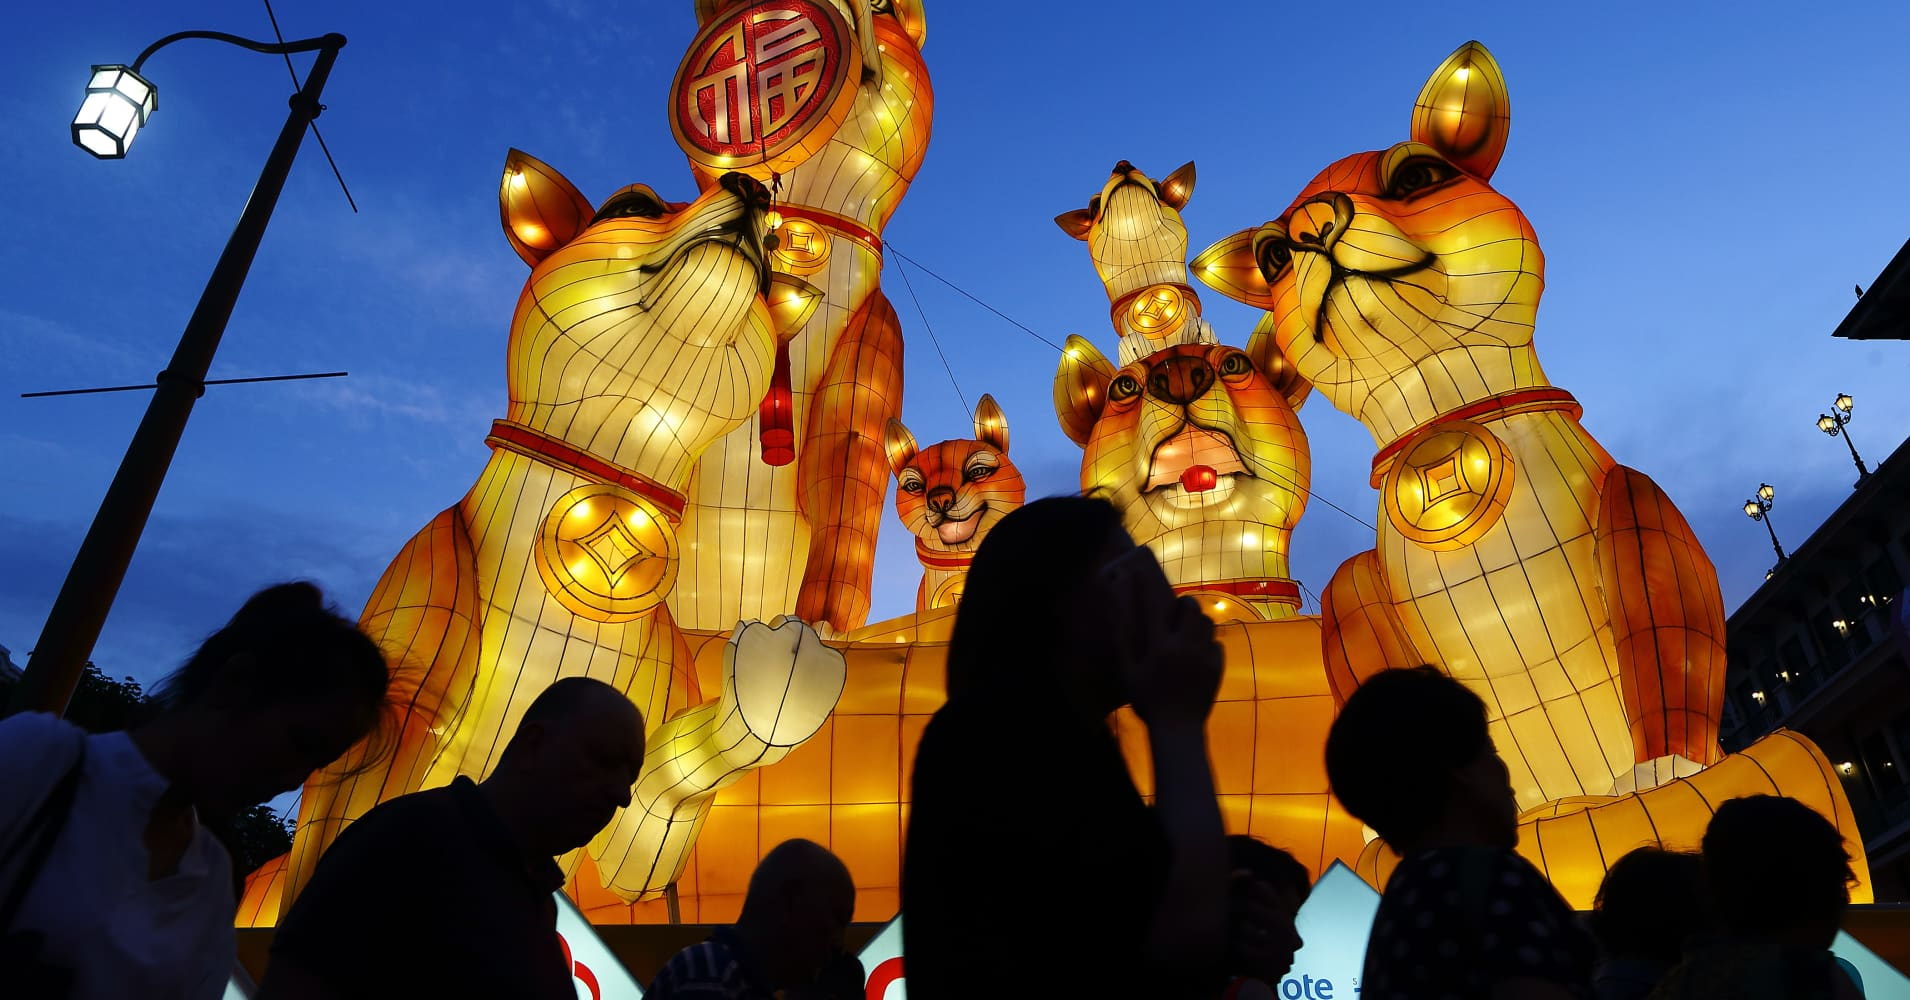 Giant dog lanterns loom over the road at Chinatown on February 14, 2018, in Singapore.